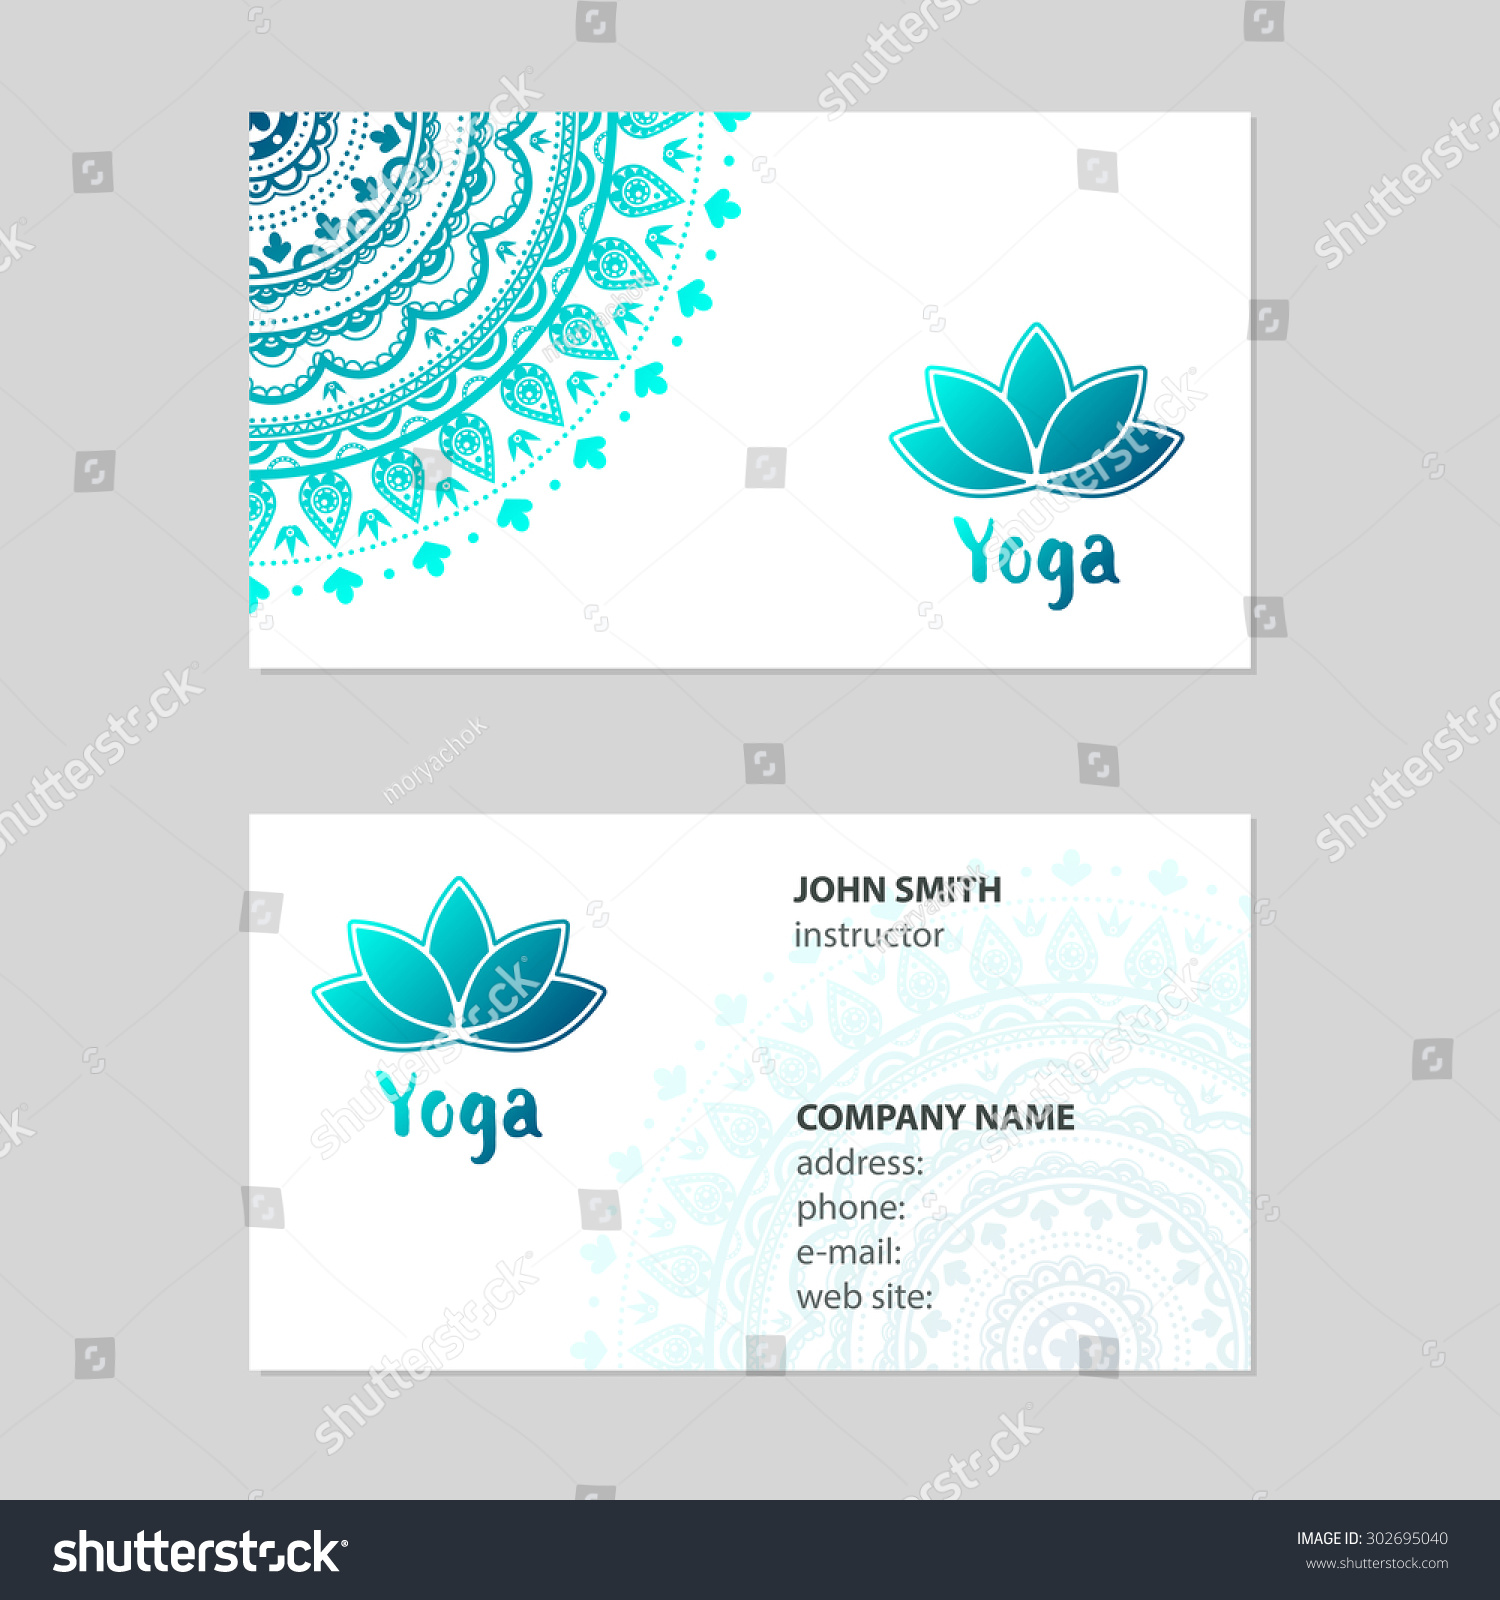 Business Card Yoga Stock Vector 302695040 - Shutterstock